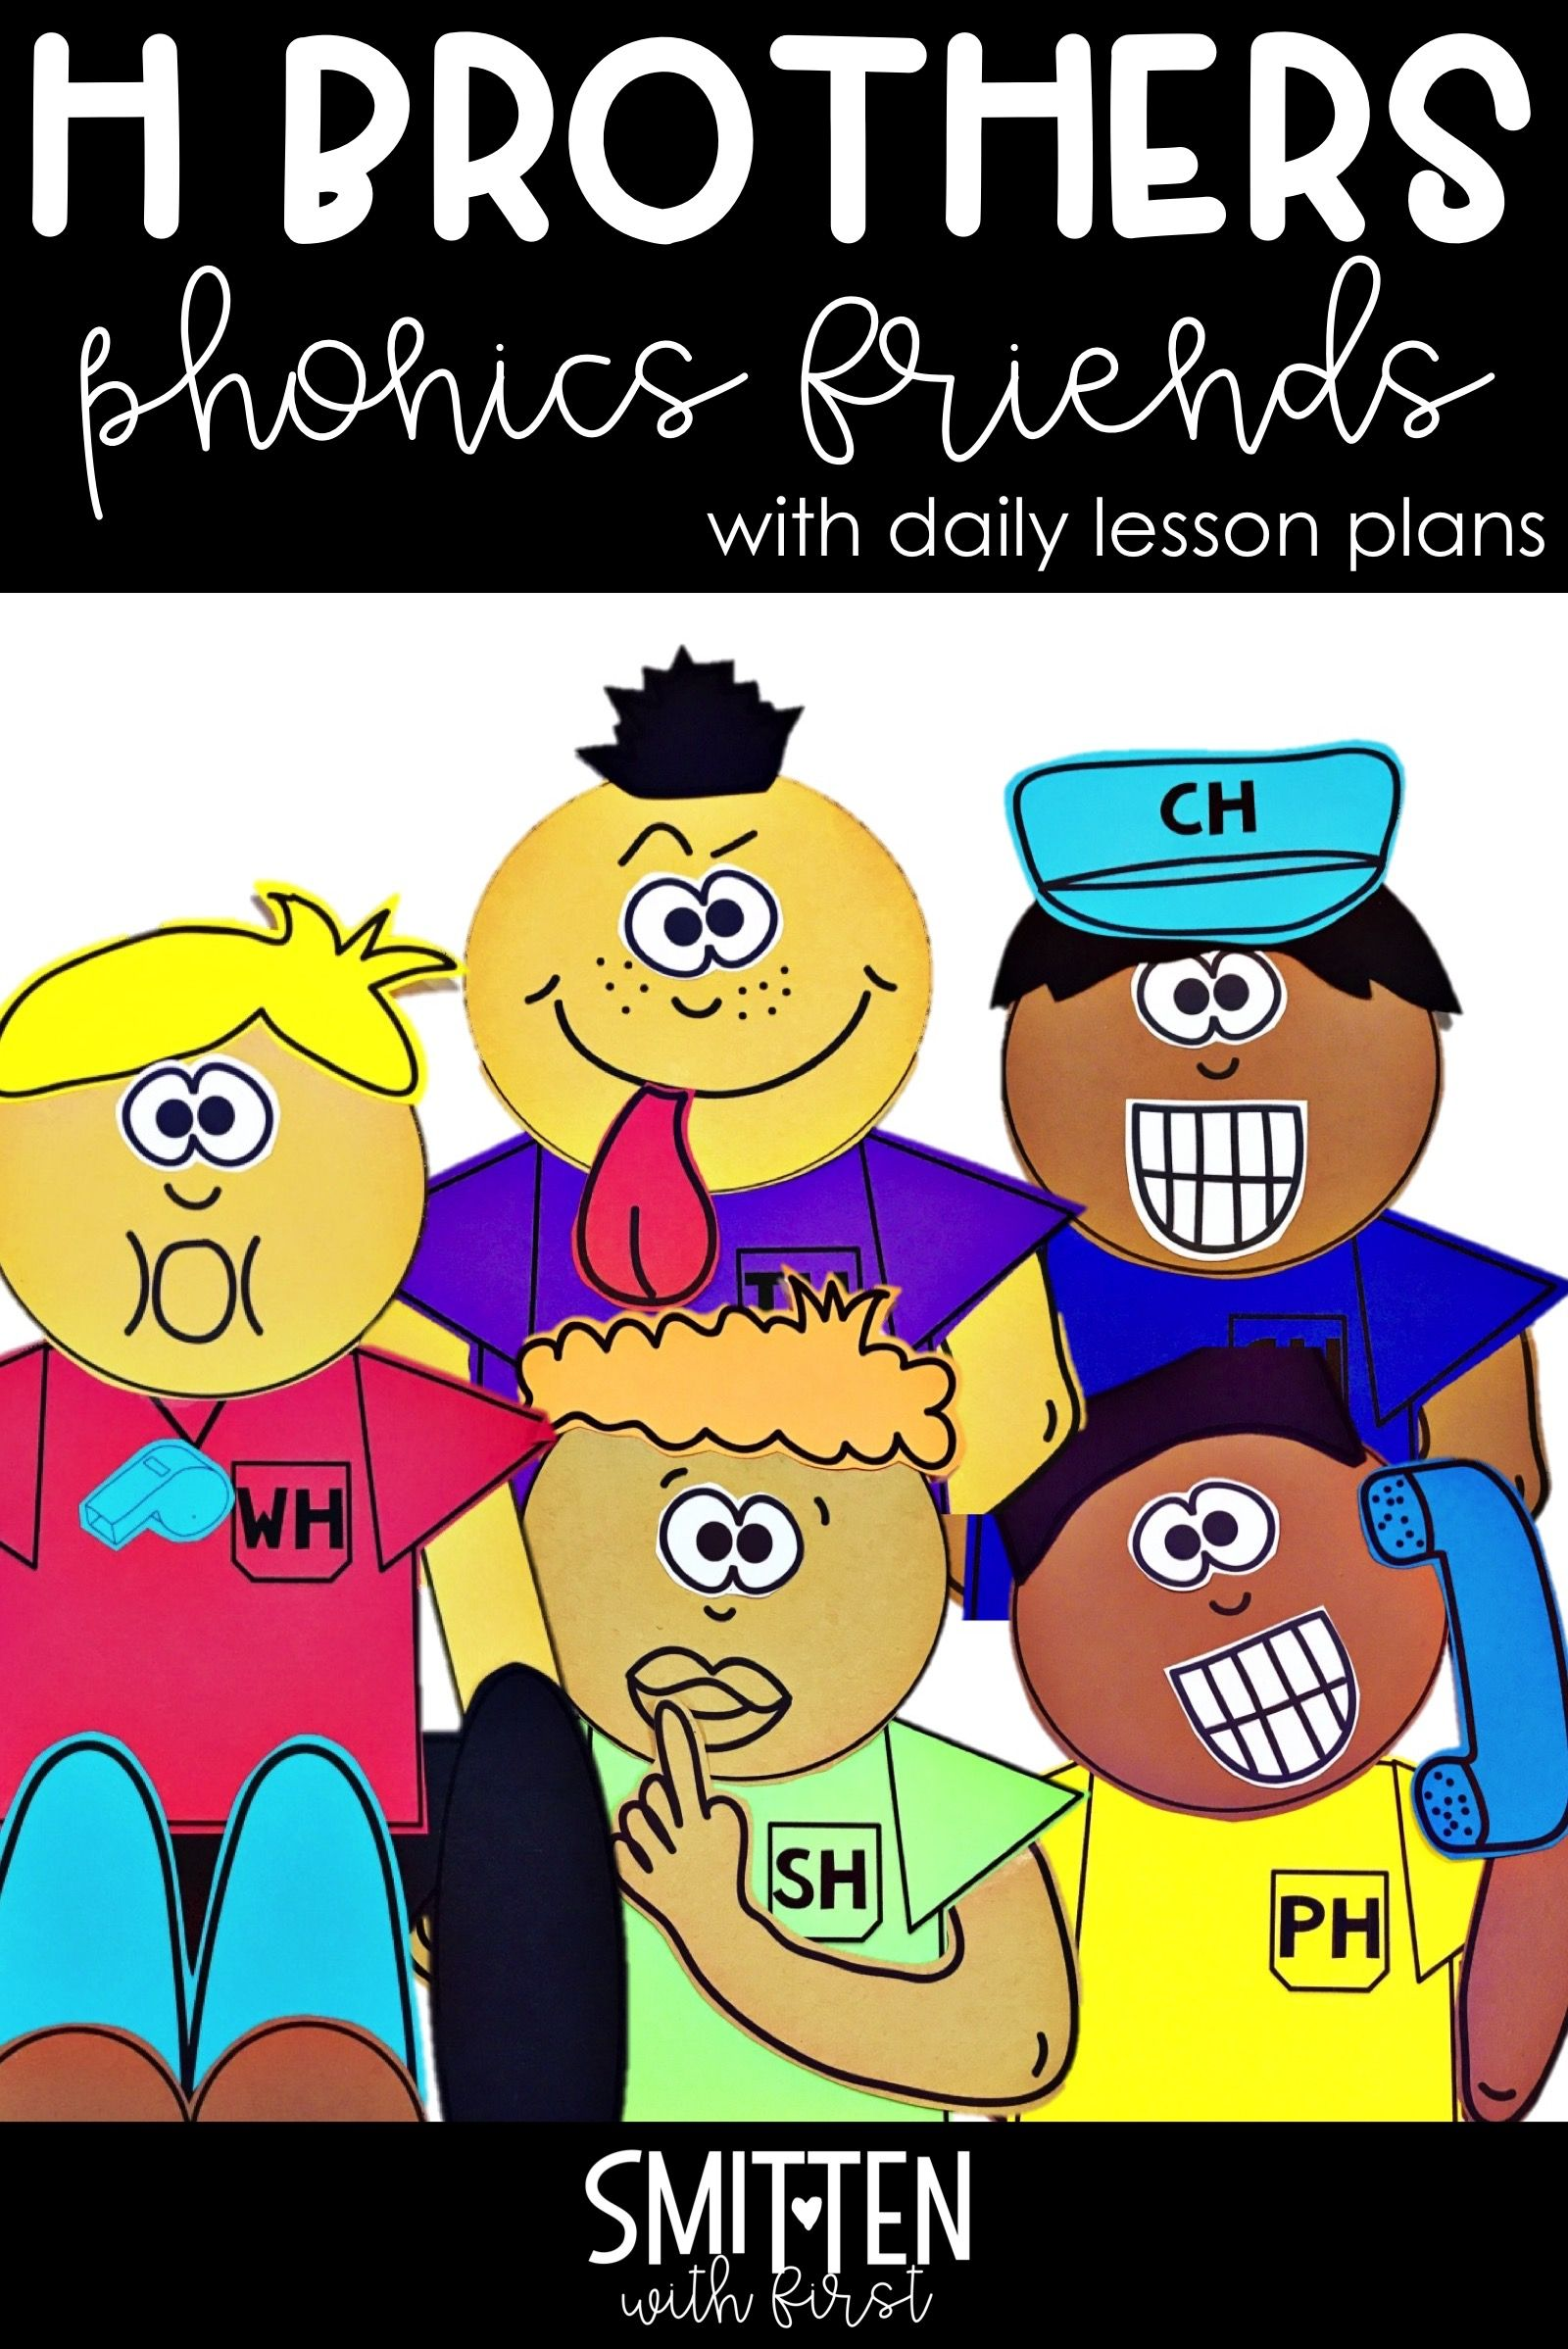 H Digraphs Wh Sh Ch Th Ph H Digraph Brothers Phonics Friends